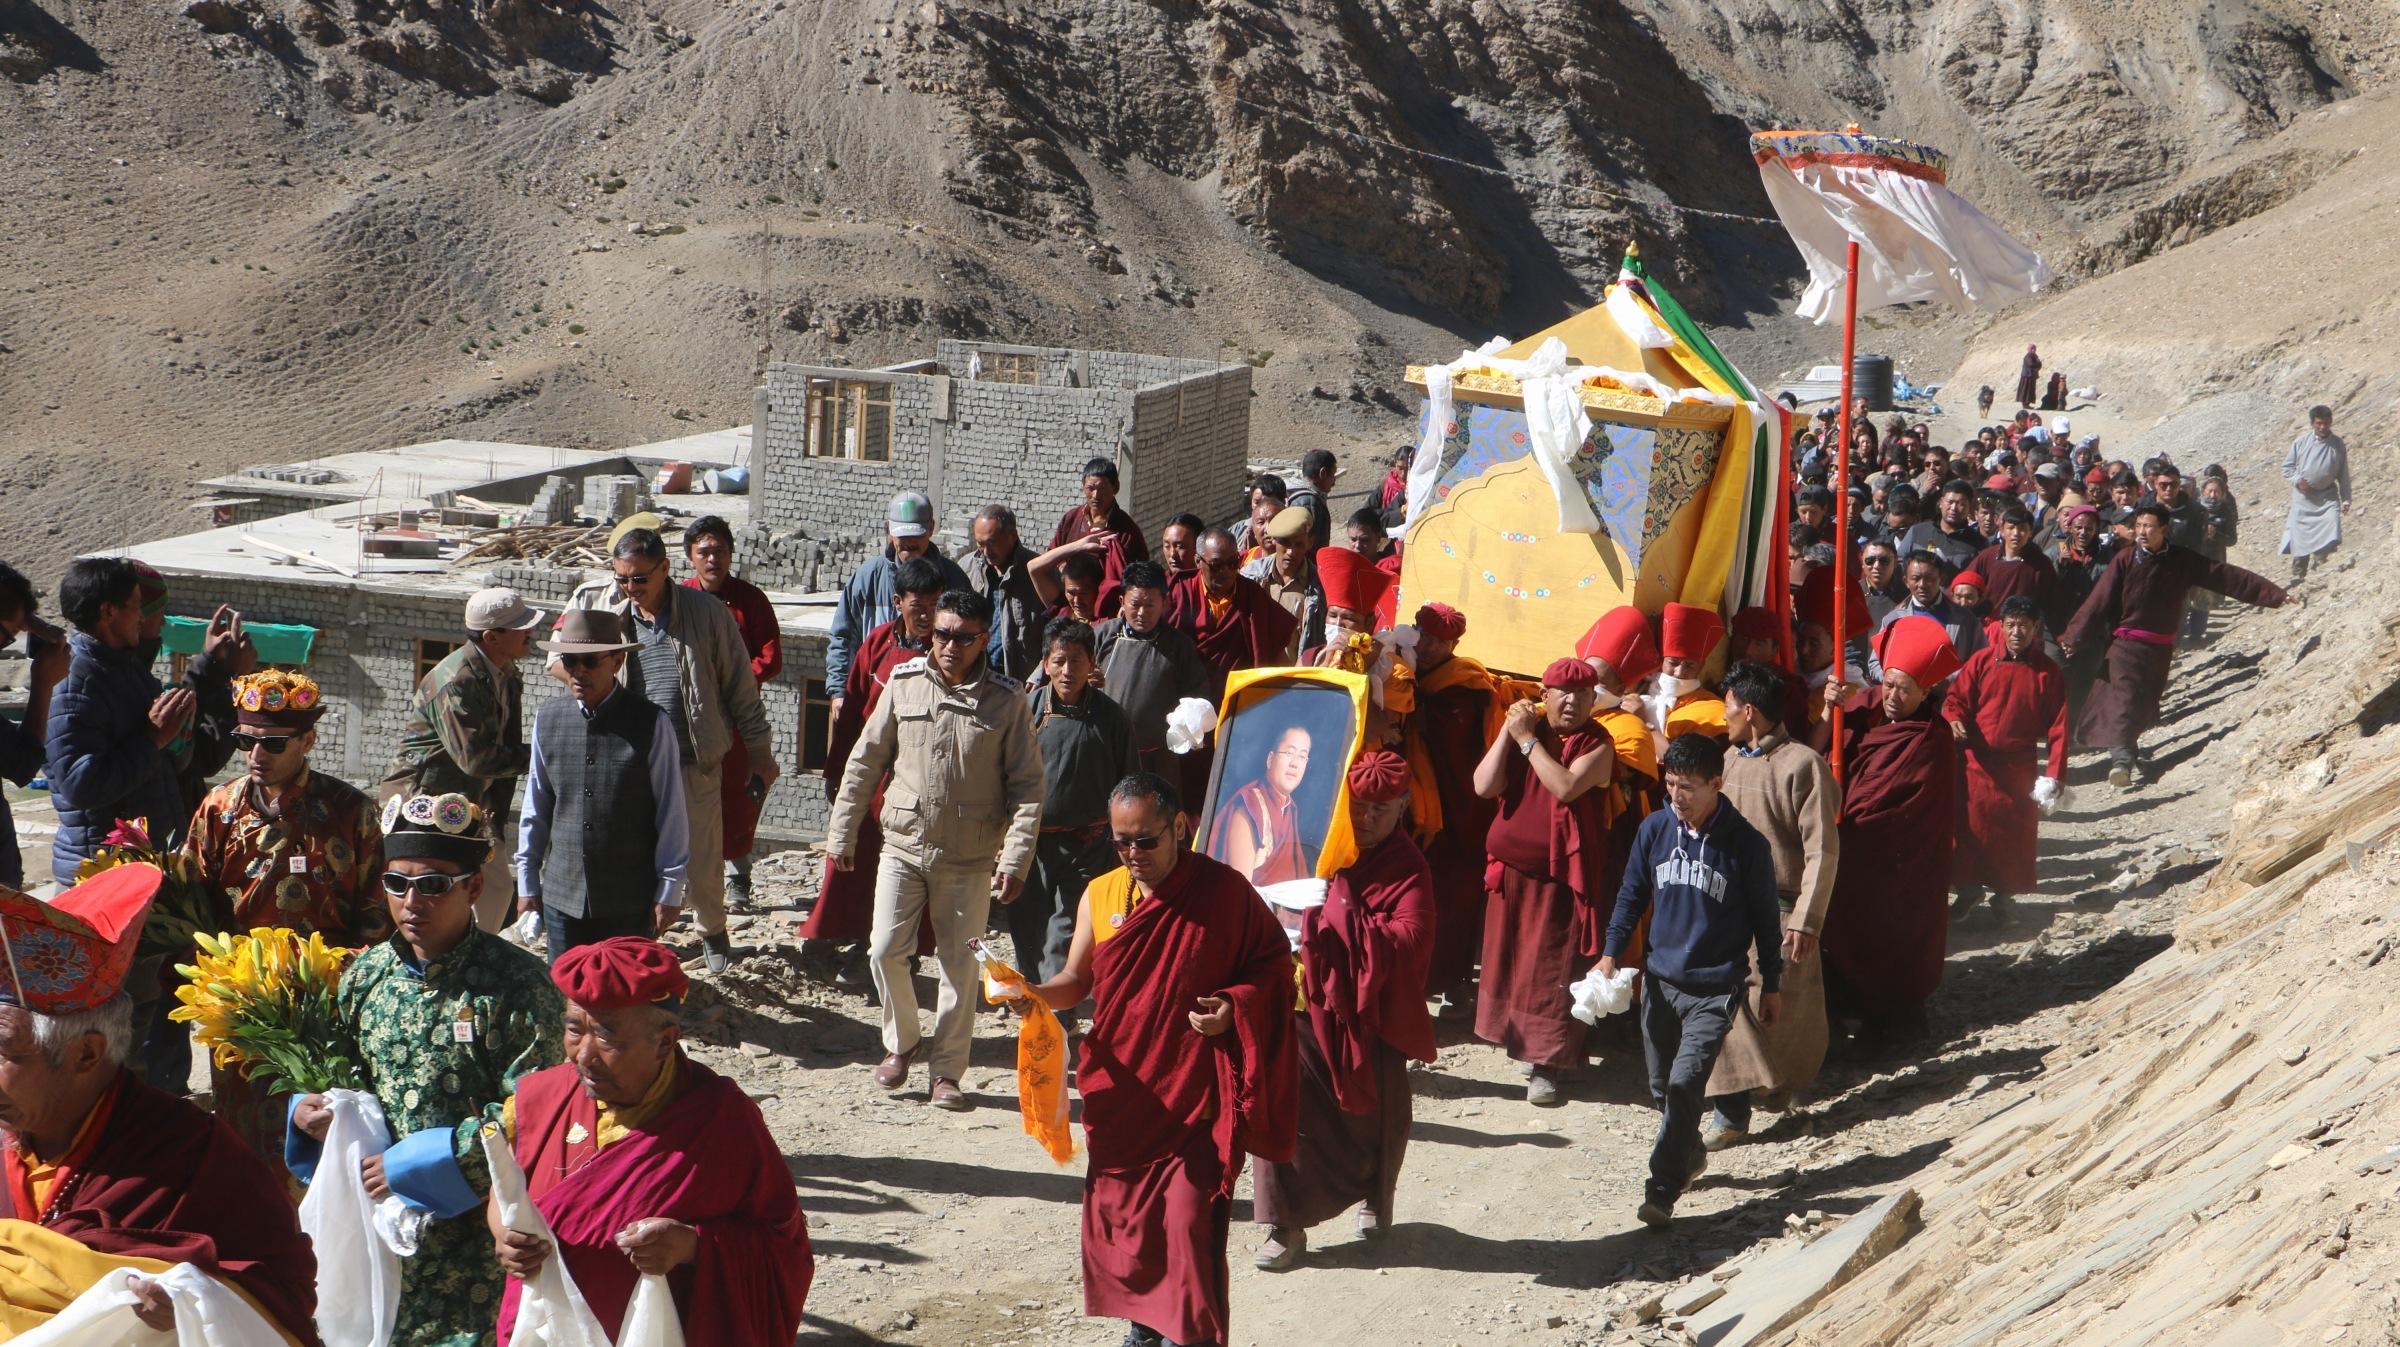 On the sunny day of October 28th, at the serene and sacred lakeside of Tso Moriri, Jetsun Choekyi Gonpo presided over the cremation ceremony of the IX Langna Rinpoche of Korzok Monastery in Lhadakh.